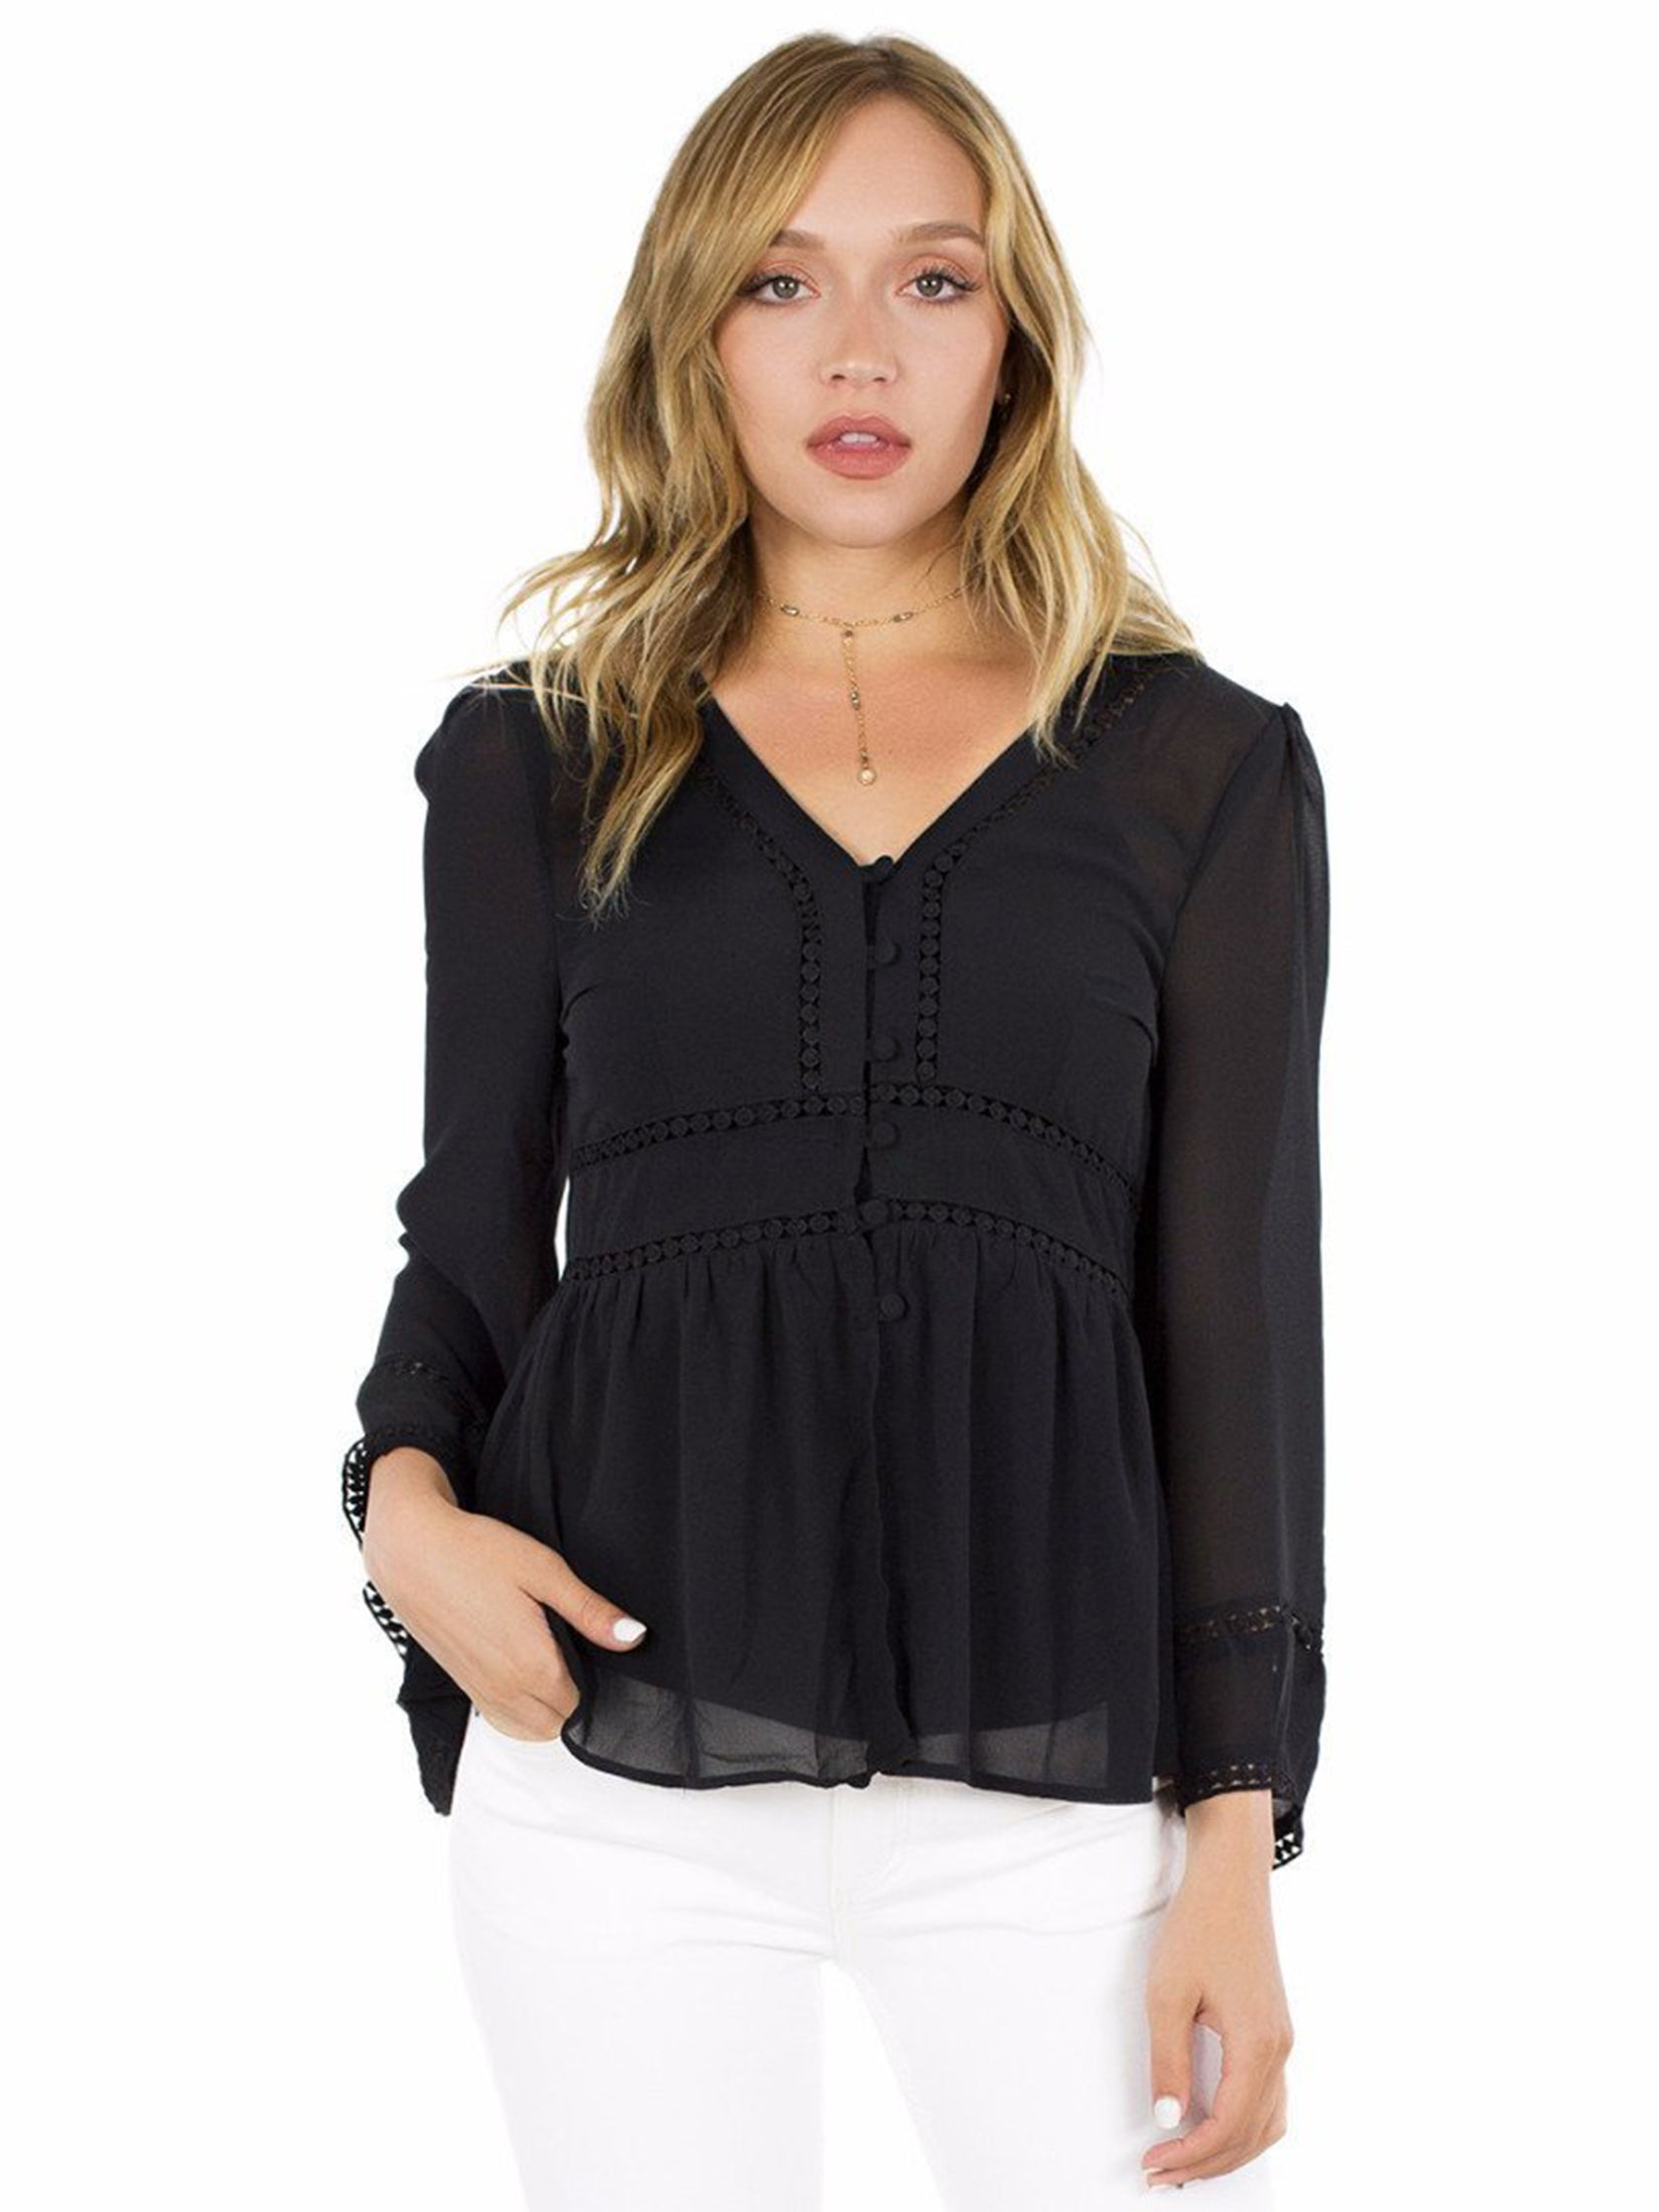 Woman wearing a top rental from FashionPass called All Buttoned Up Shirt